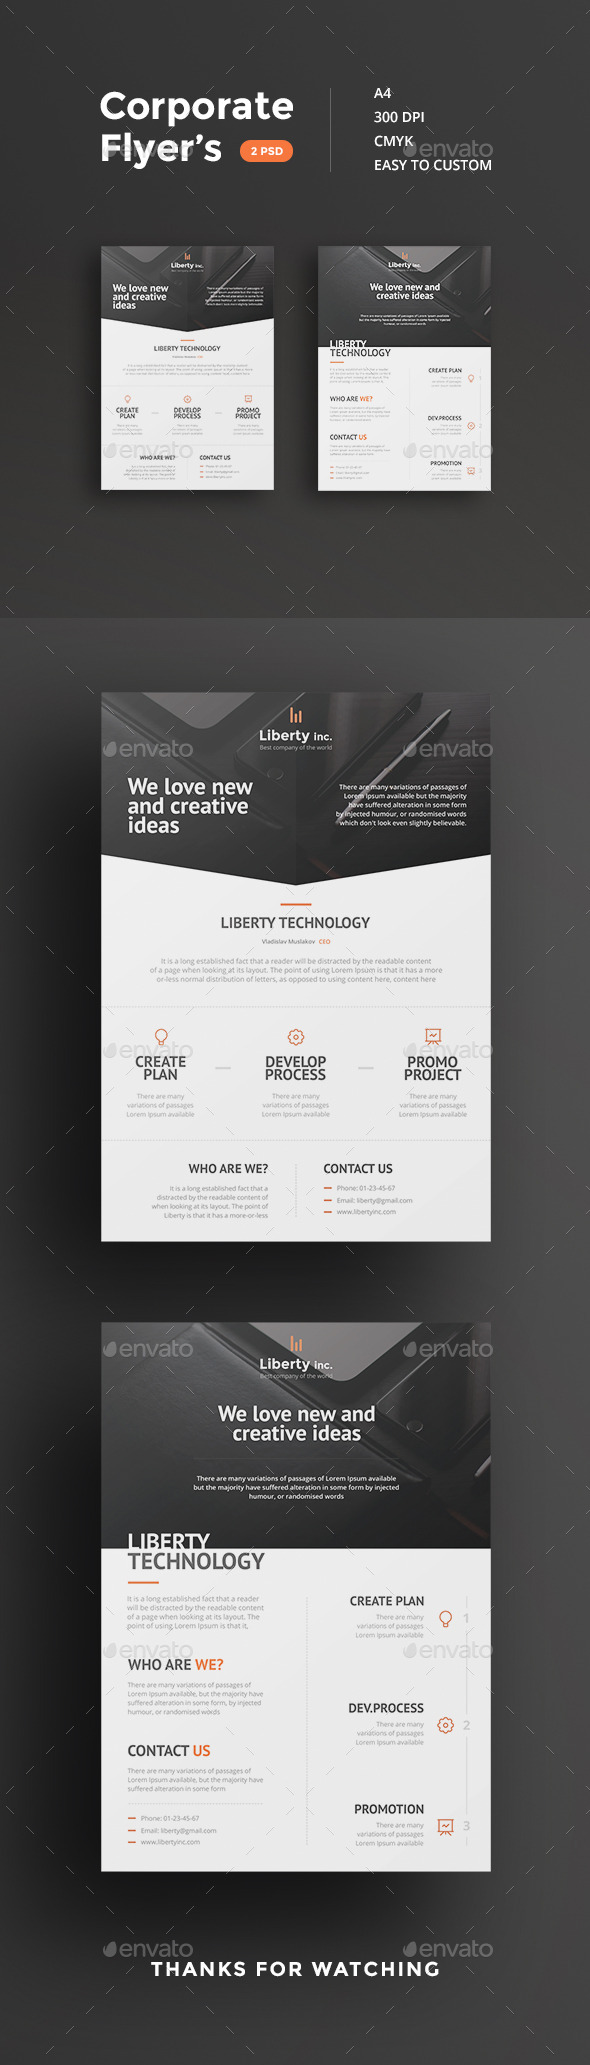 Corporate Flyers Template Psd Design Download Http